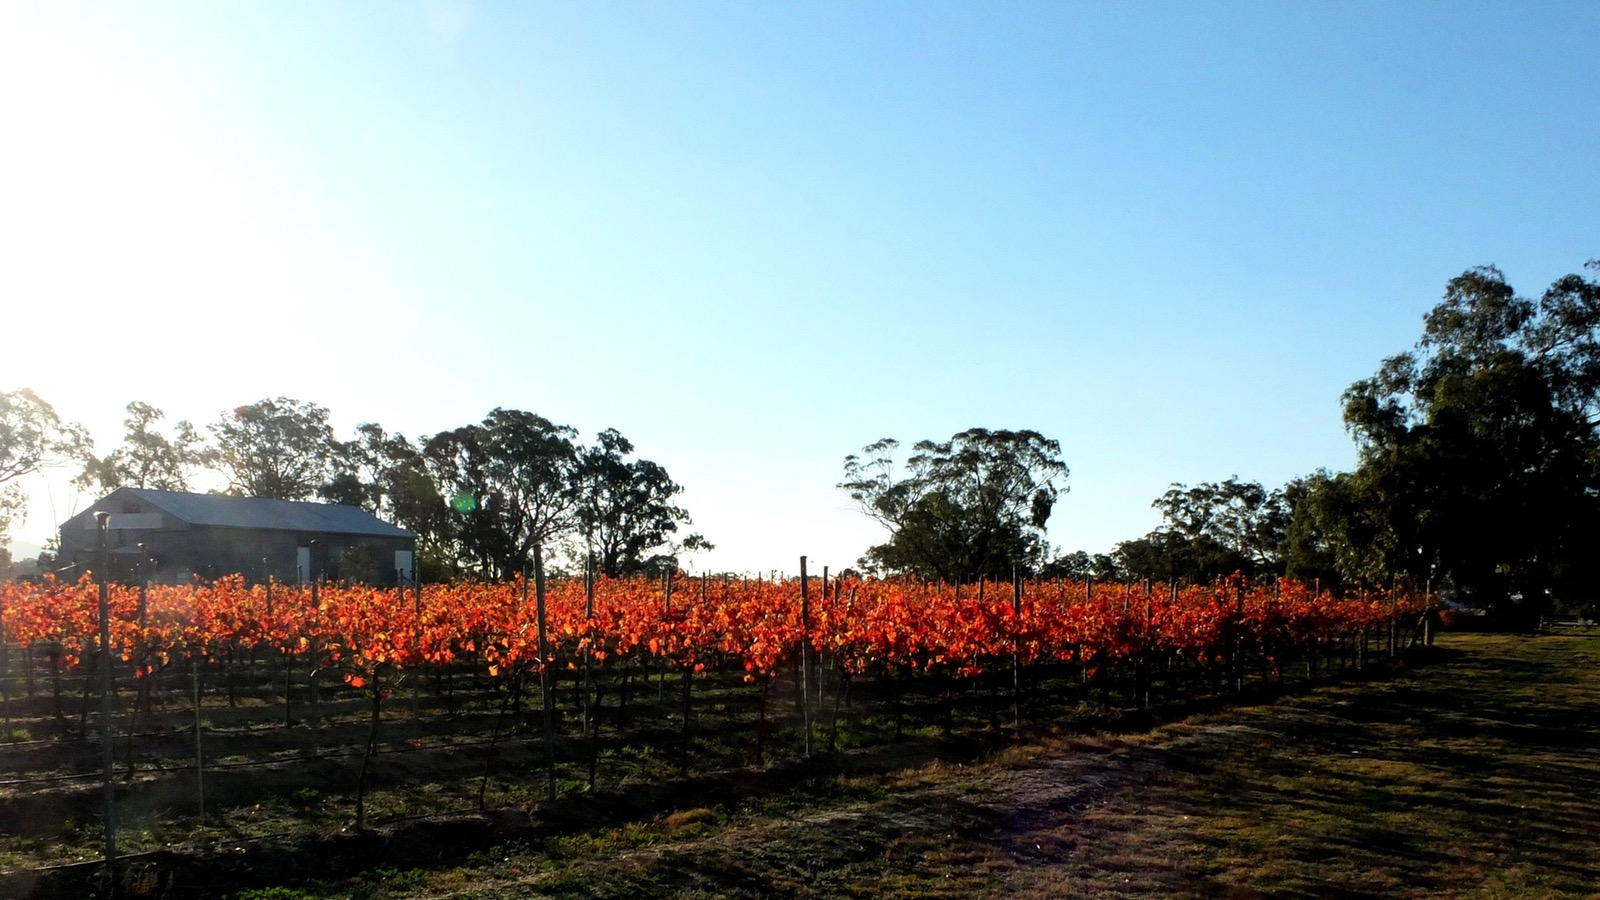 Autumn vines - firey tinges